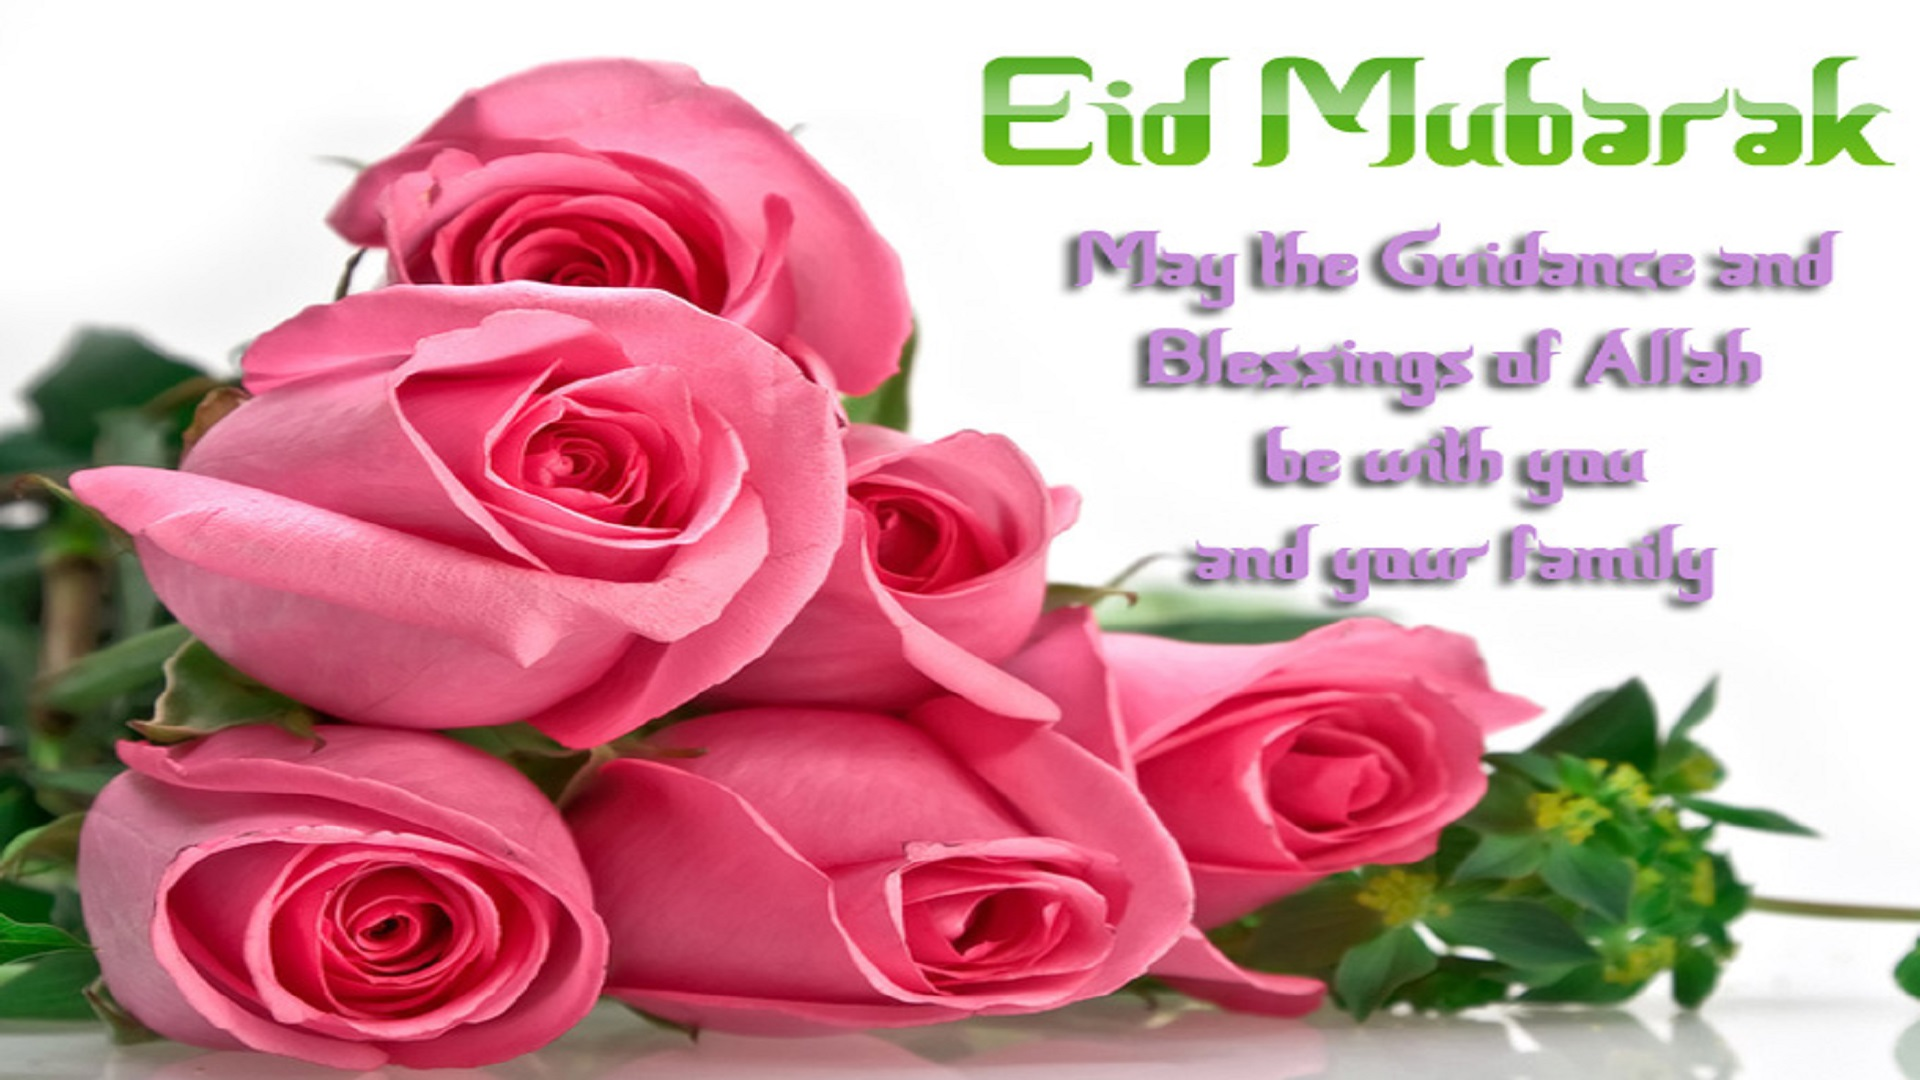 funny-eid-ul-fitr-quotes-card-free-hd-wallpapers